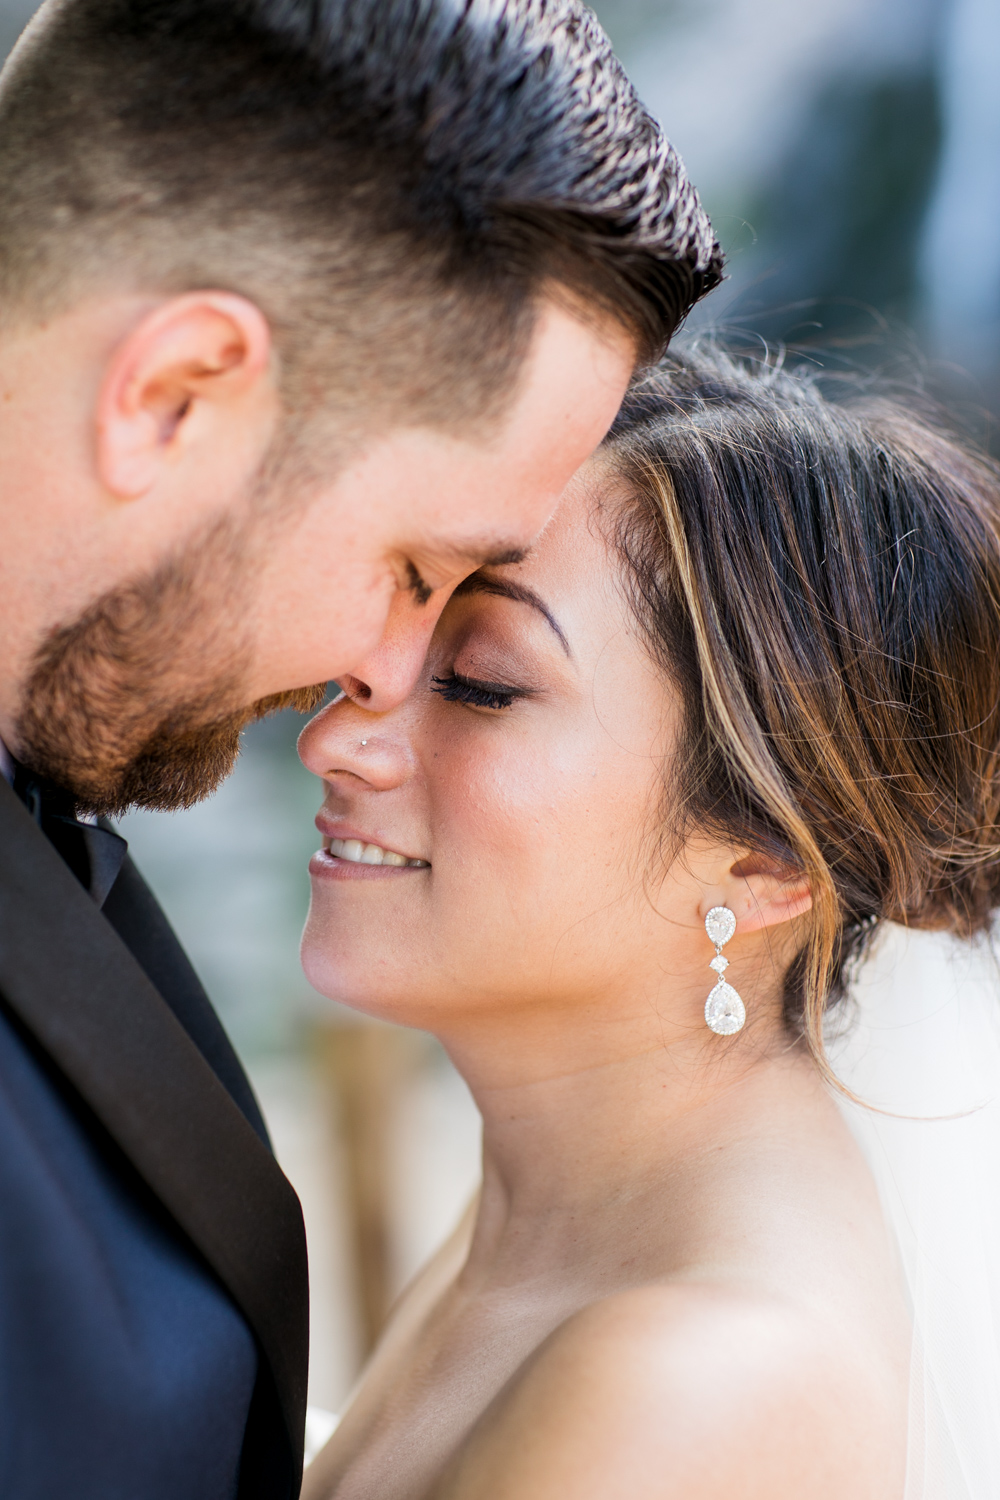 a close up of bride and groom touching foreheads smiling with their eyes closed